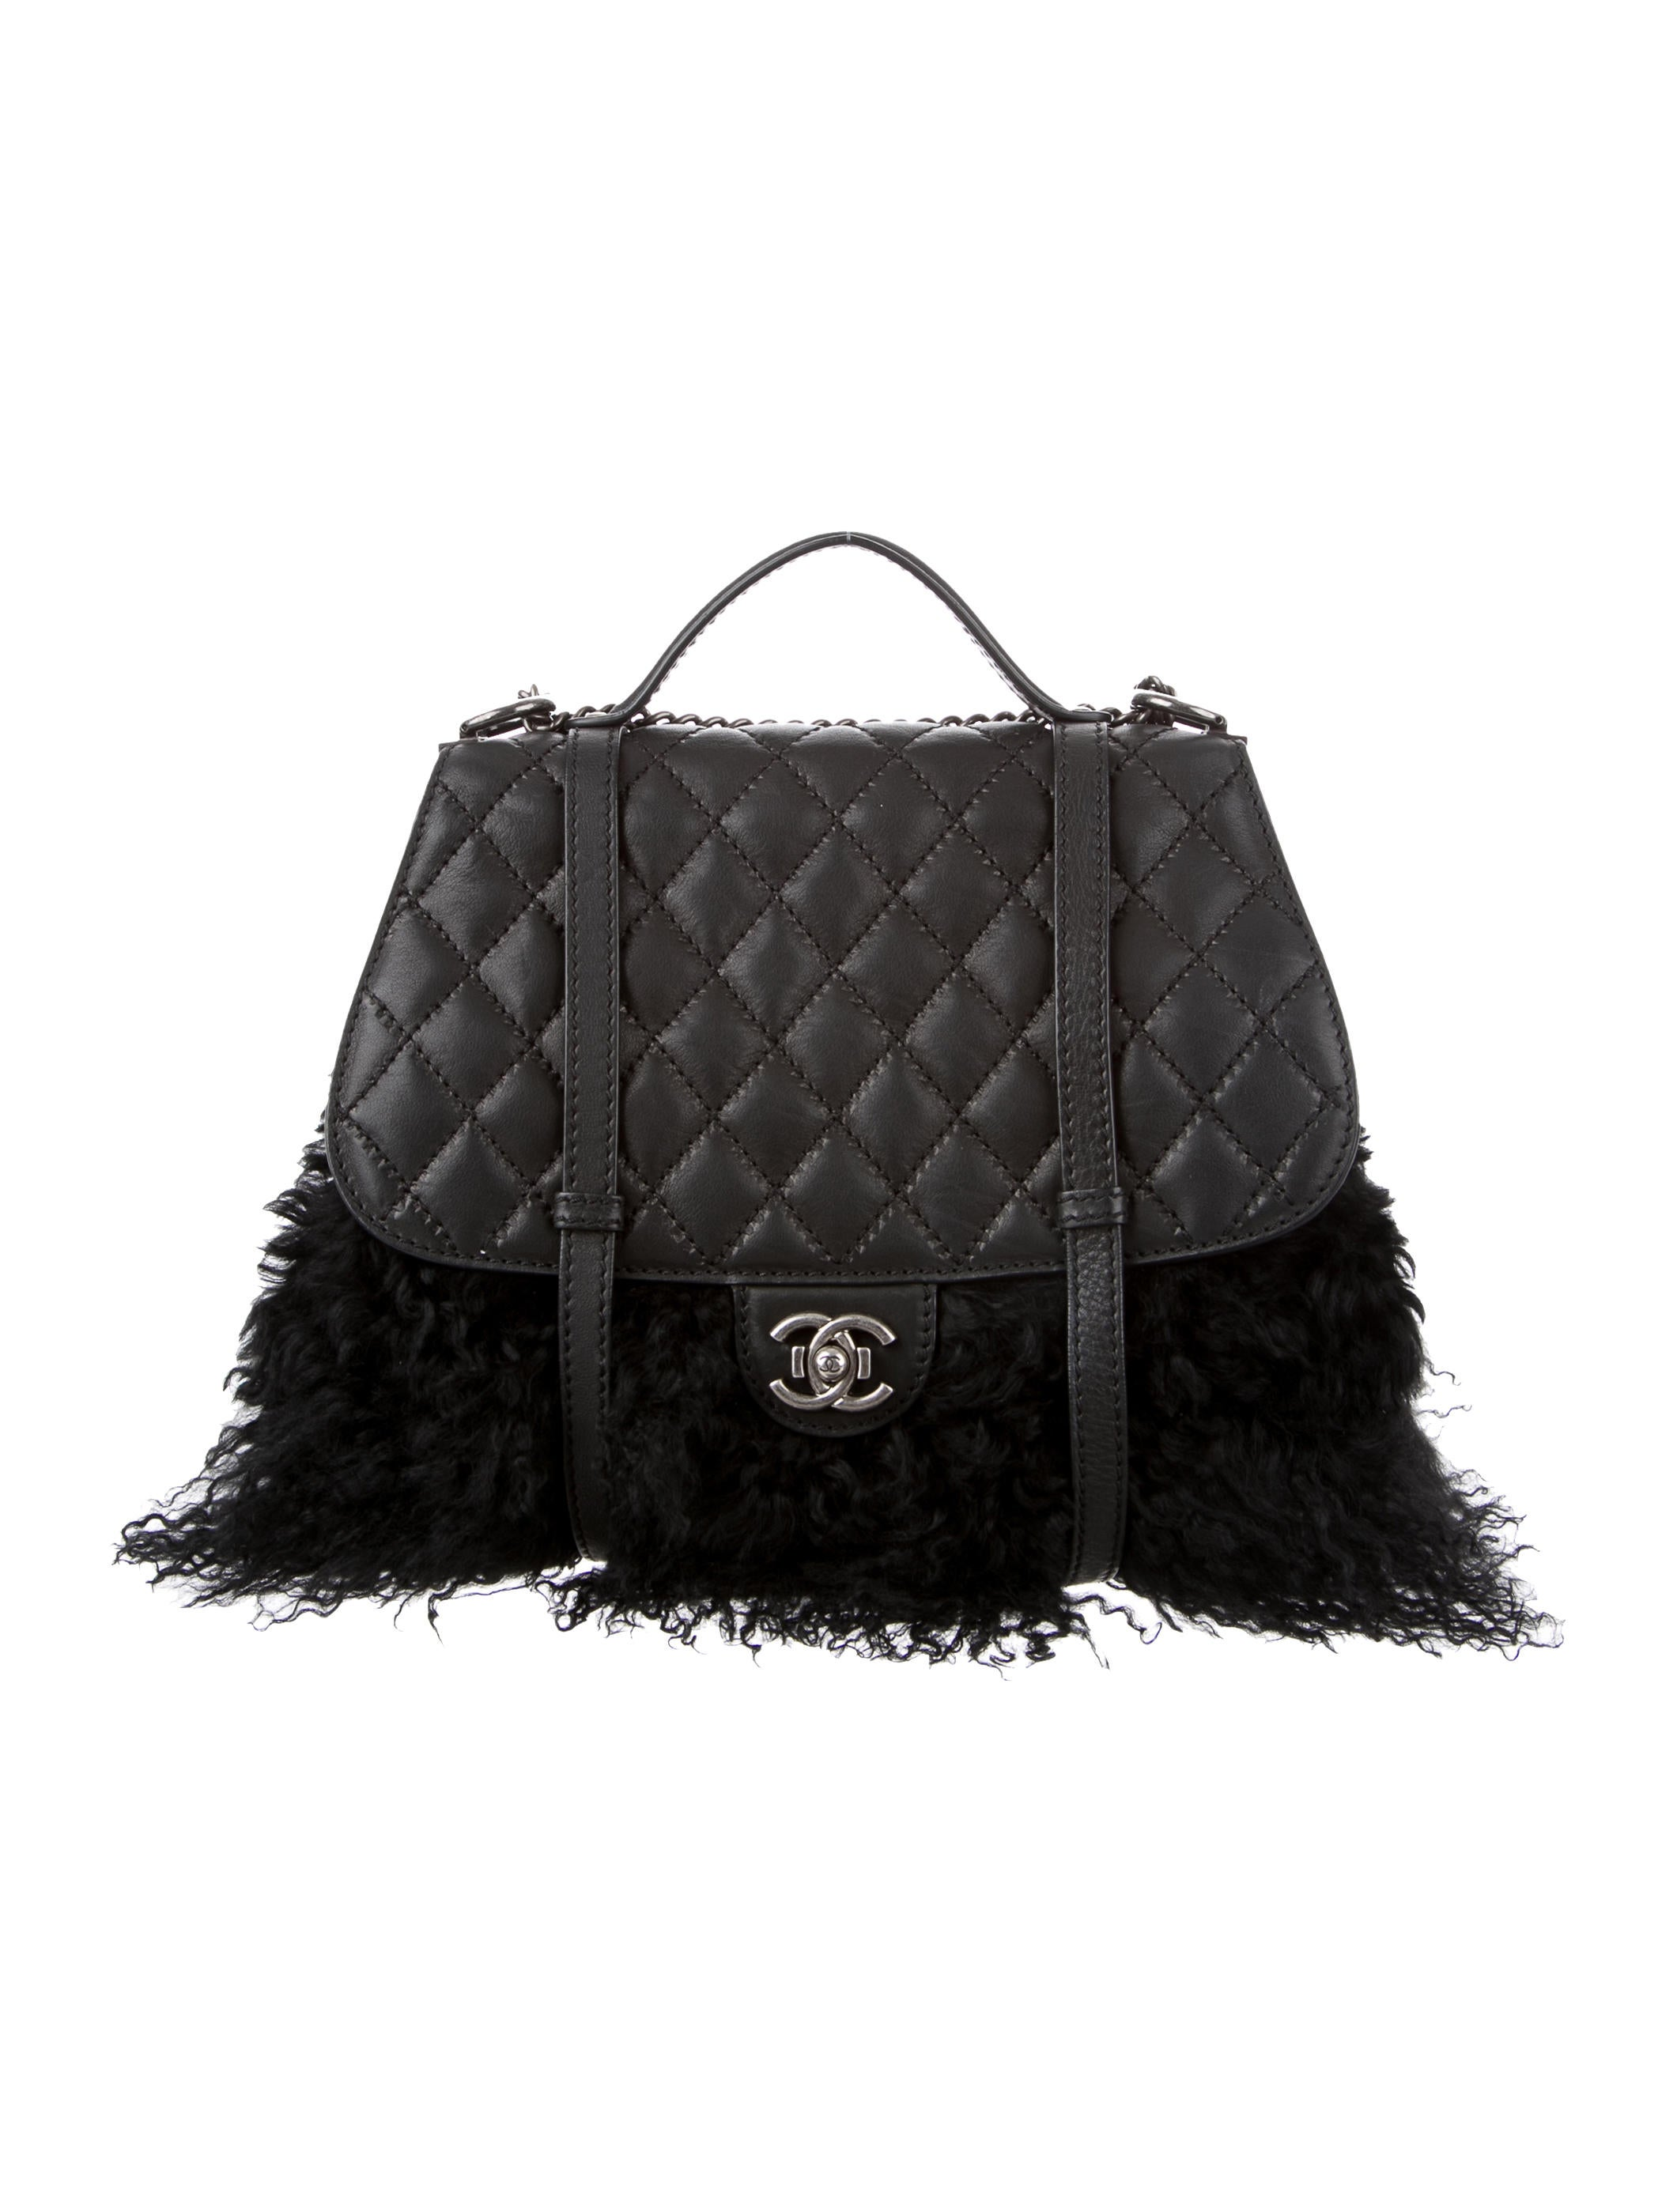 618536a86549 Chanel Flap Bag Fur Collection | Stanford Center for Opportunity ...